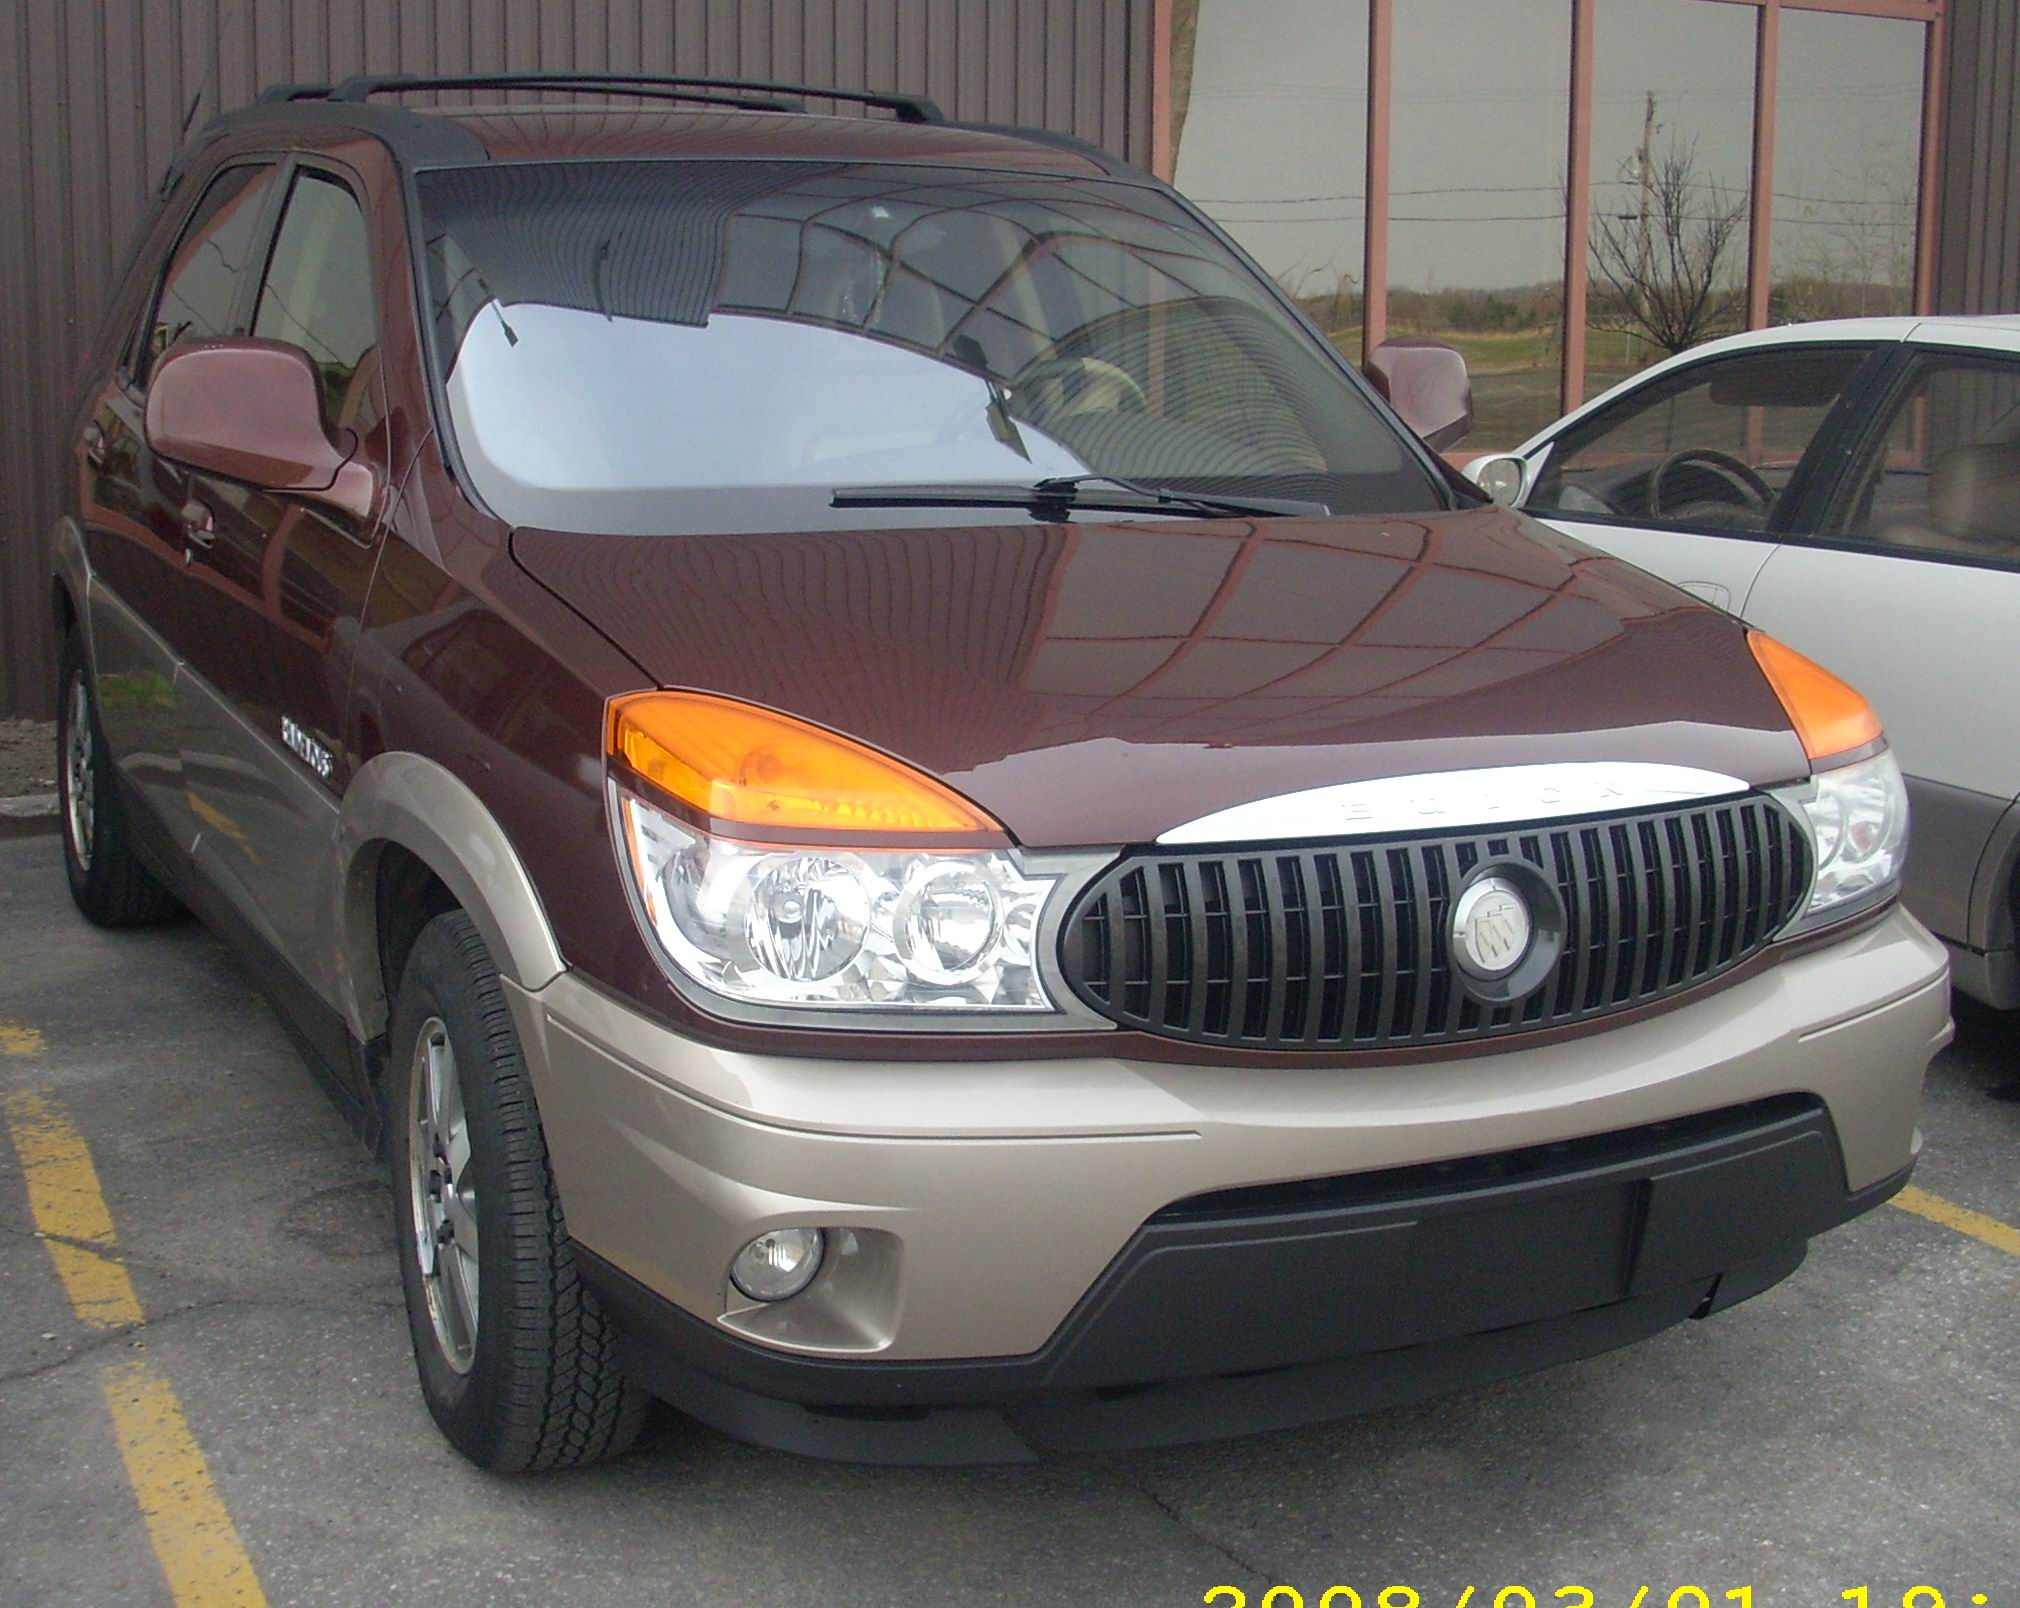 Buick Rendez-vous 2002 photo - 2